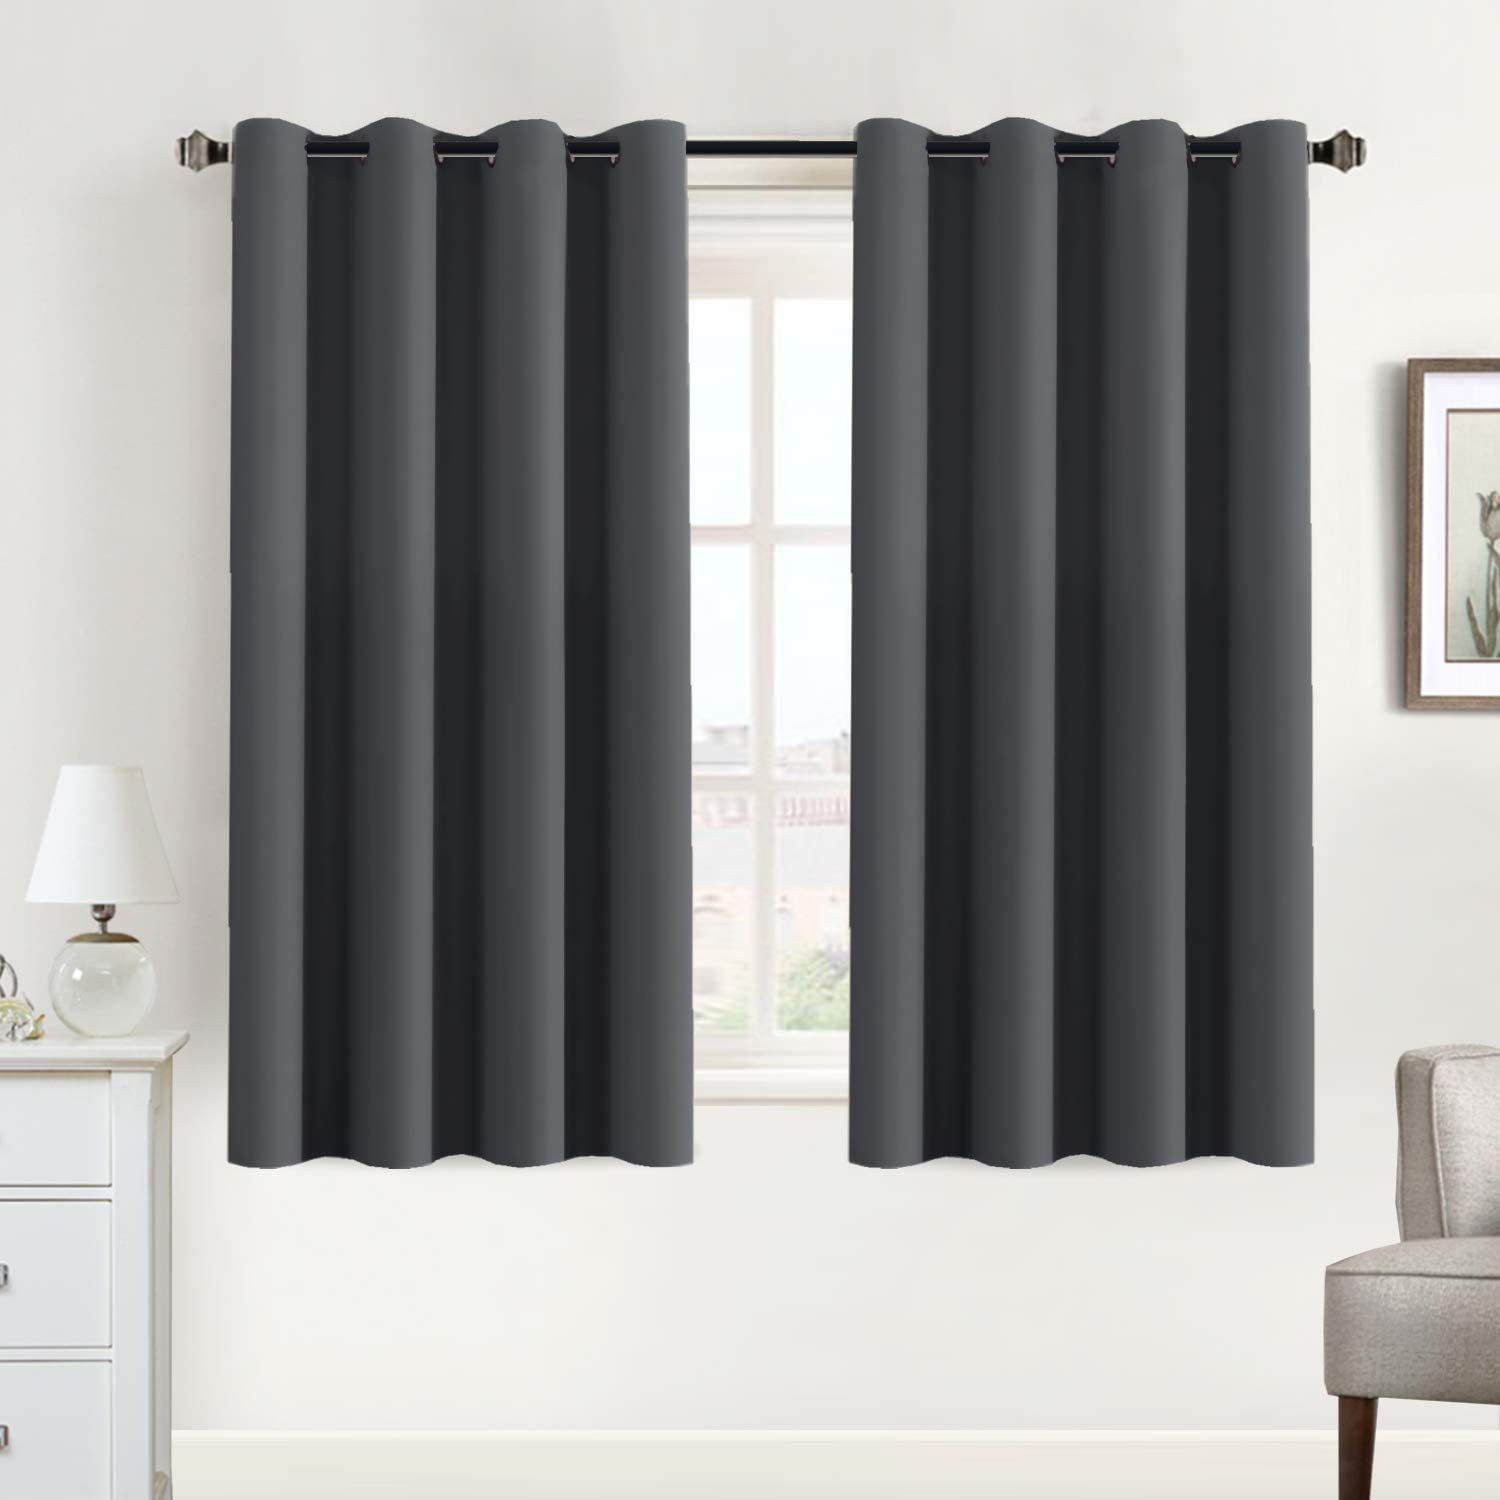 Flamingo P Blackout Curtains for Bedroom Room Darkening Curtains Thermal Insulated Curtains Window Panel Drapes - (Charcoal Grey Color) - 2 Panels - 52 inch by 63 inch, Charcoal Gray, Grommet Top